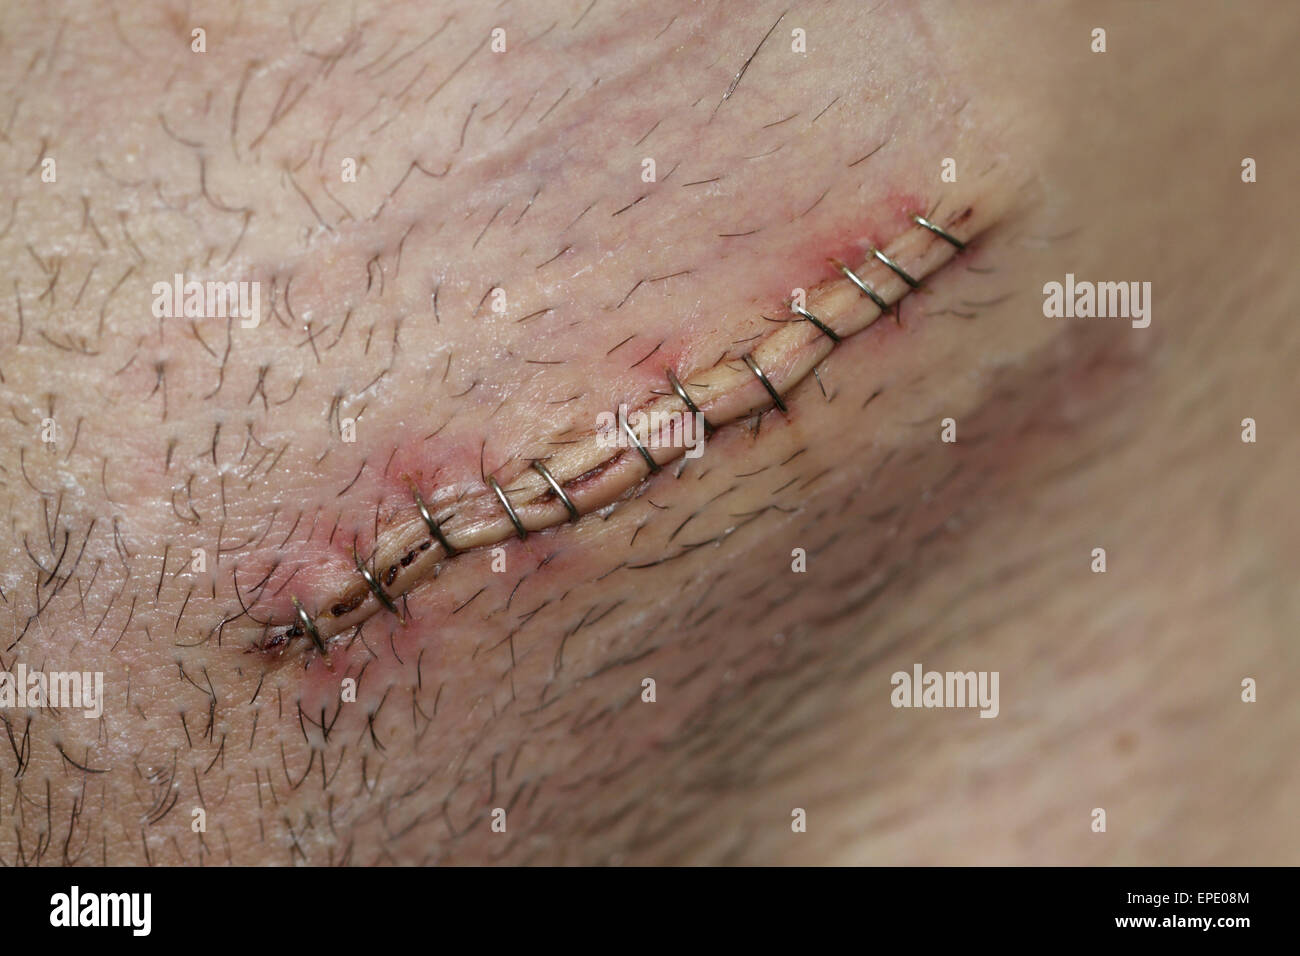 Postoperative inguinal hernia surgical incision Stock ...